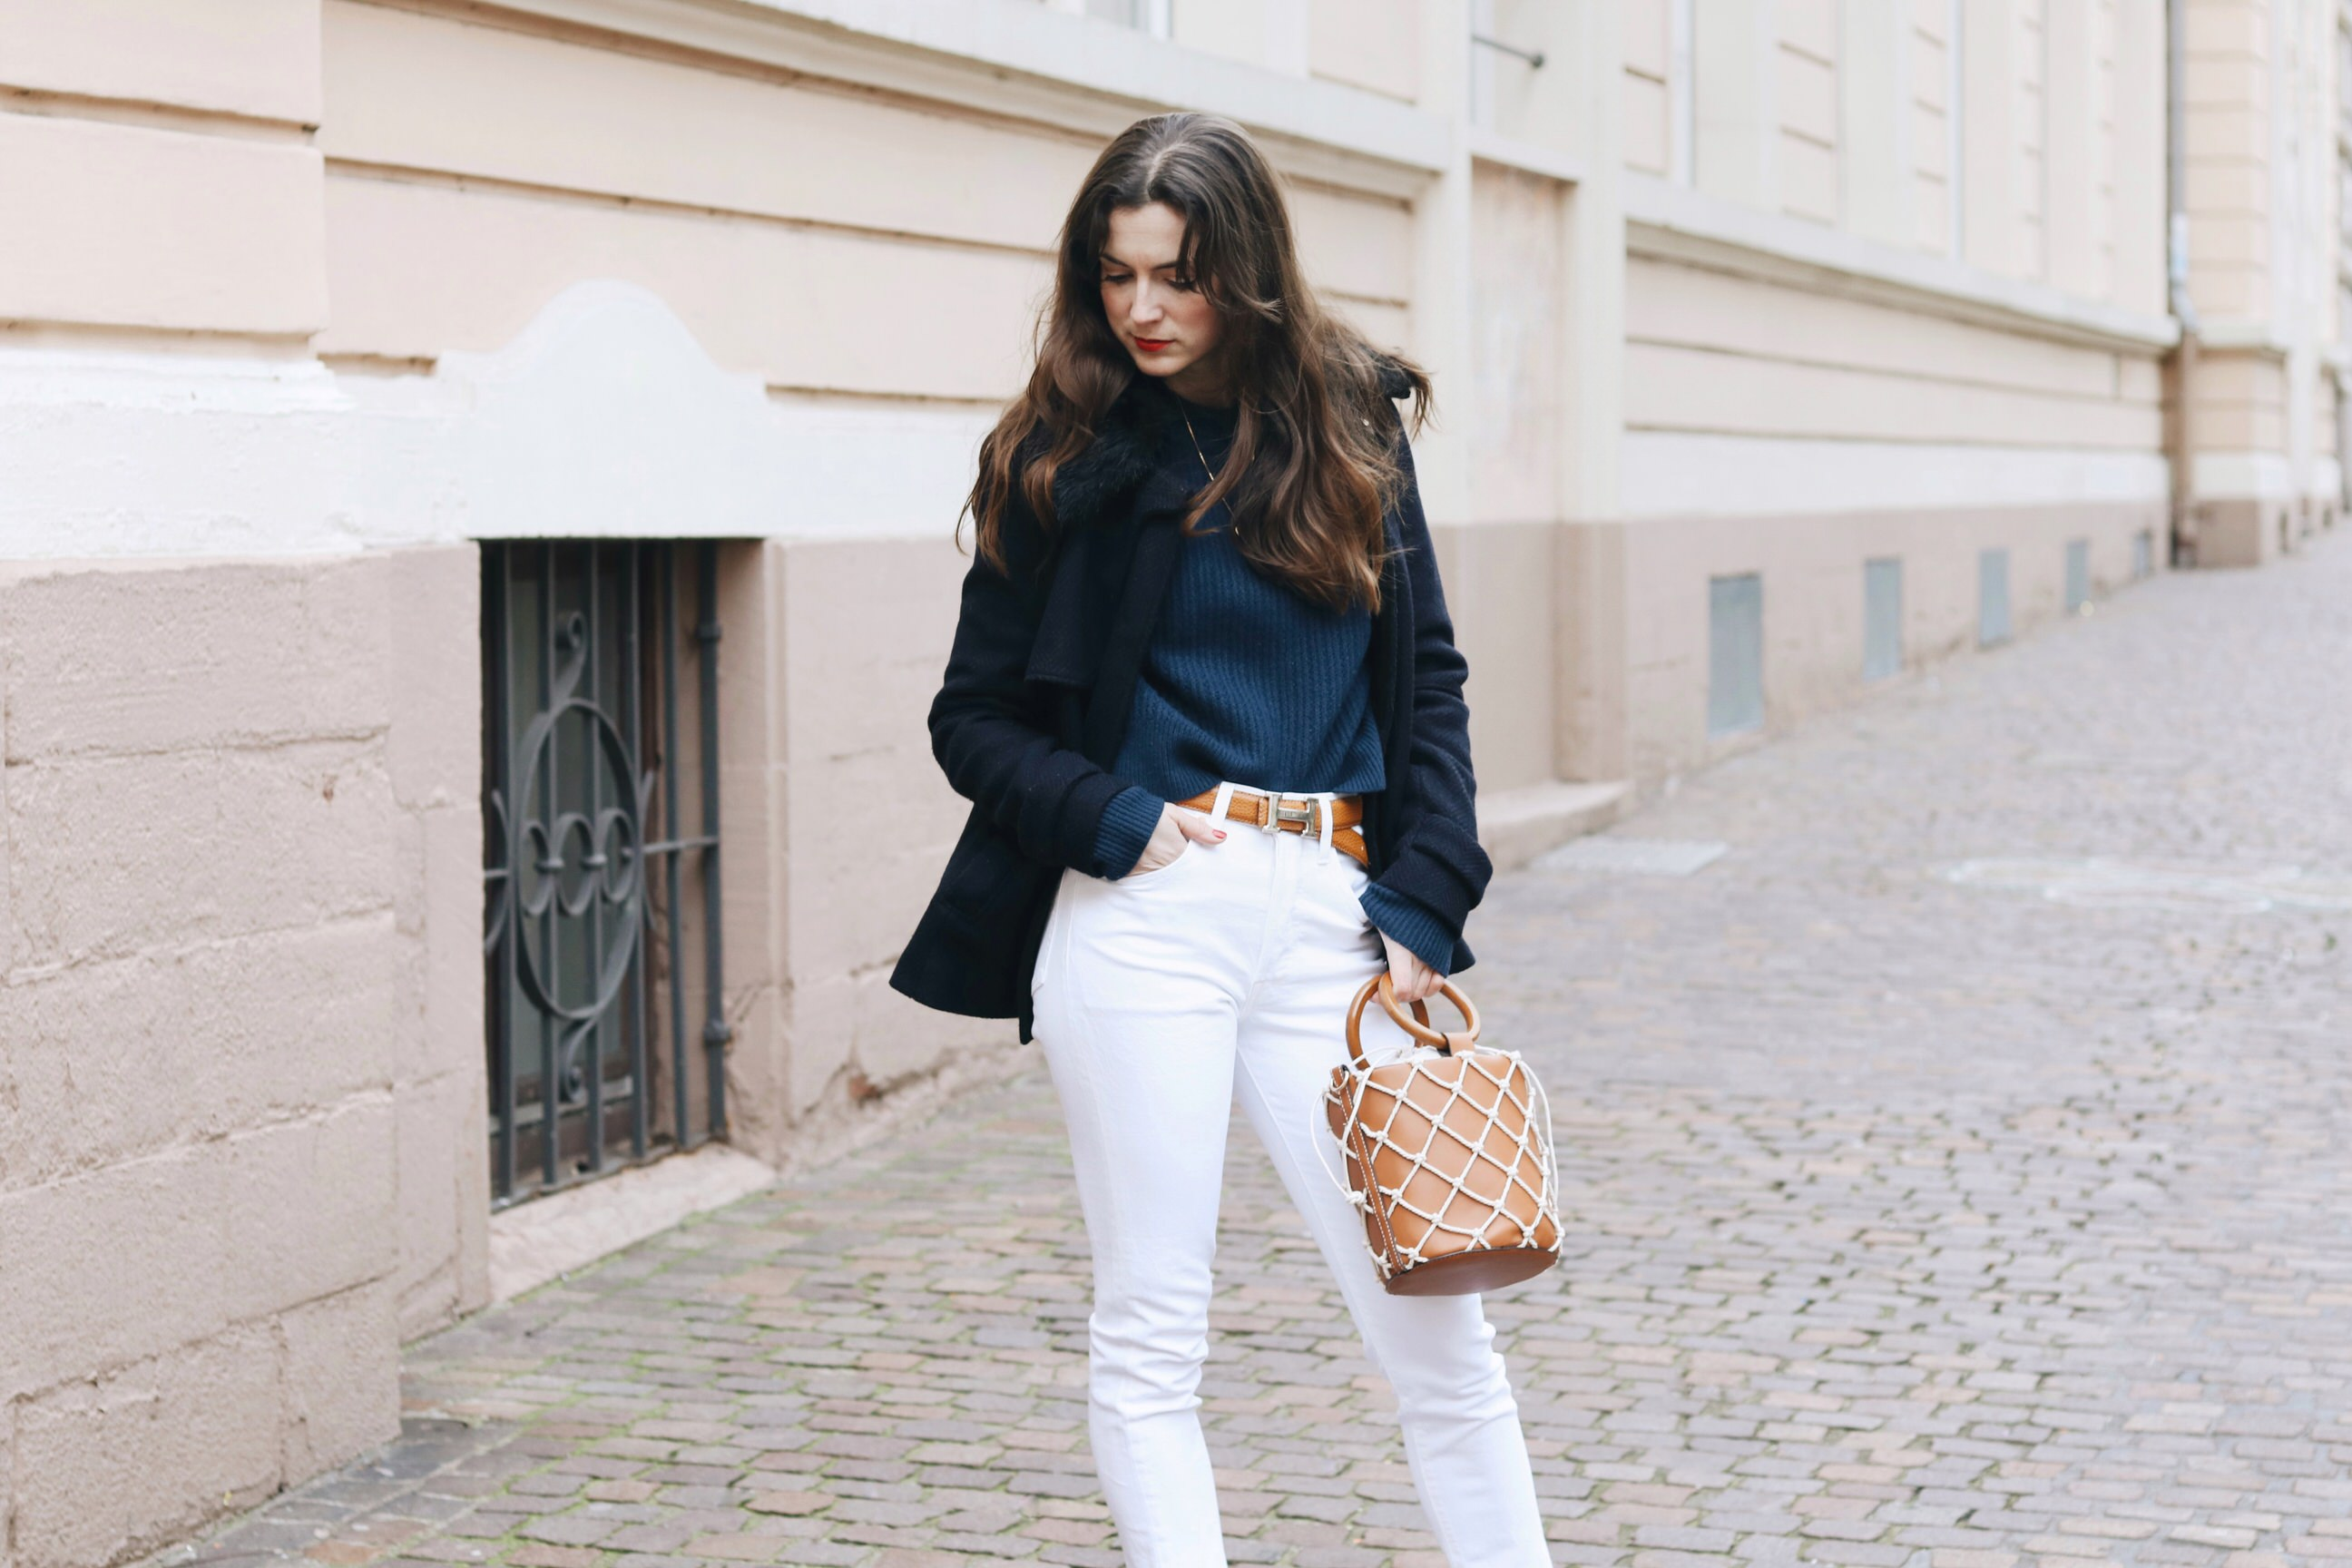 Modeblog Outfit Streetstyle Winter look Top 10 deutsch caban Jacke ring bag Mom Jeans weiss hermes Guertel Neele Modebloggerin